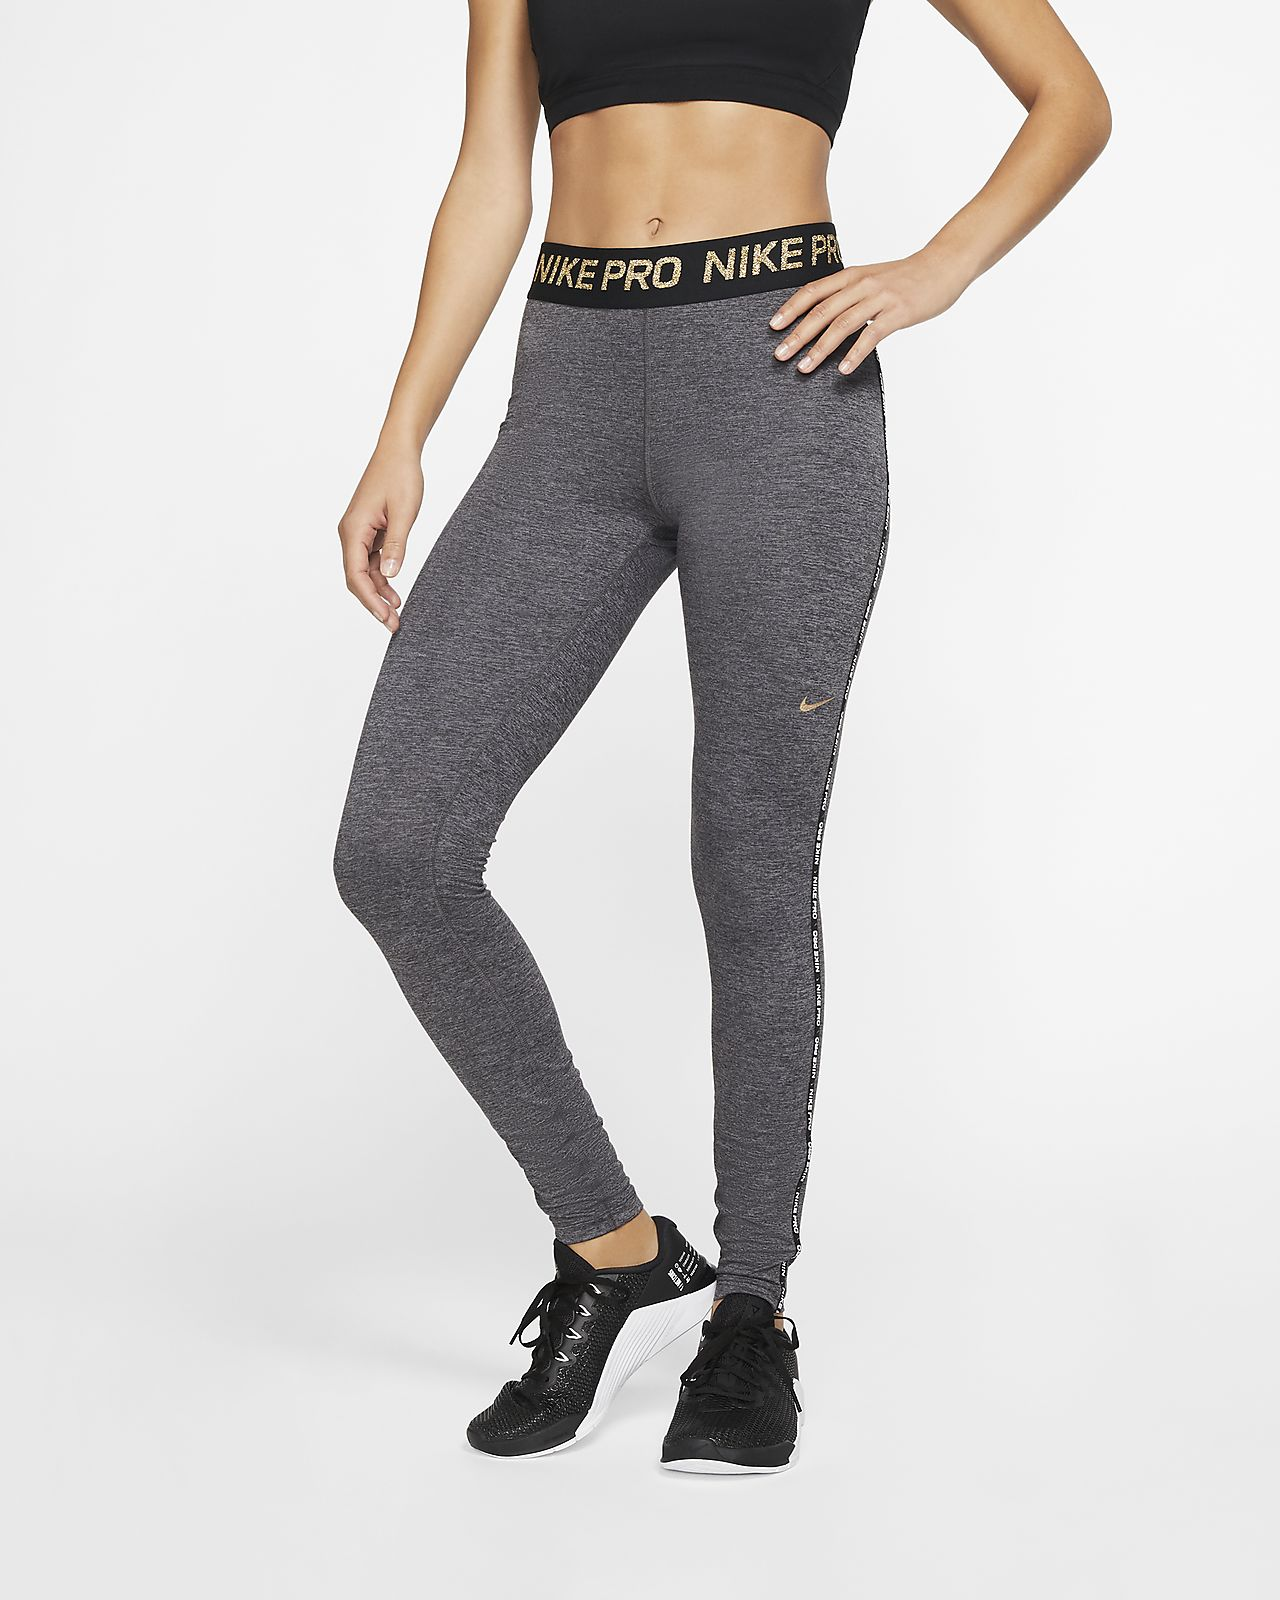 Nike Pro Warm Women's Metallic Tights